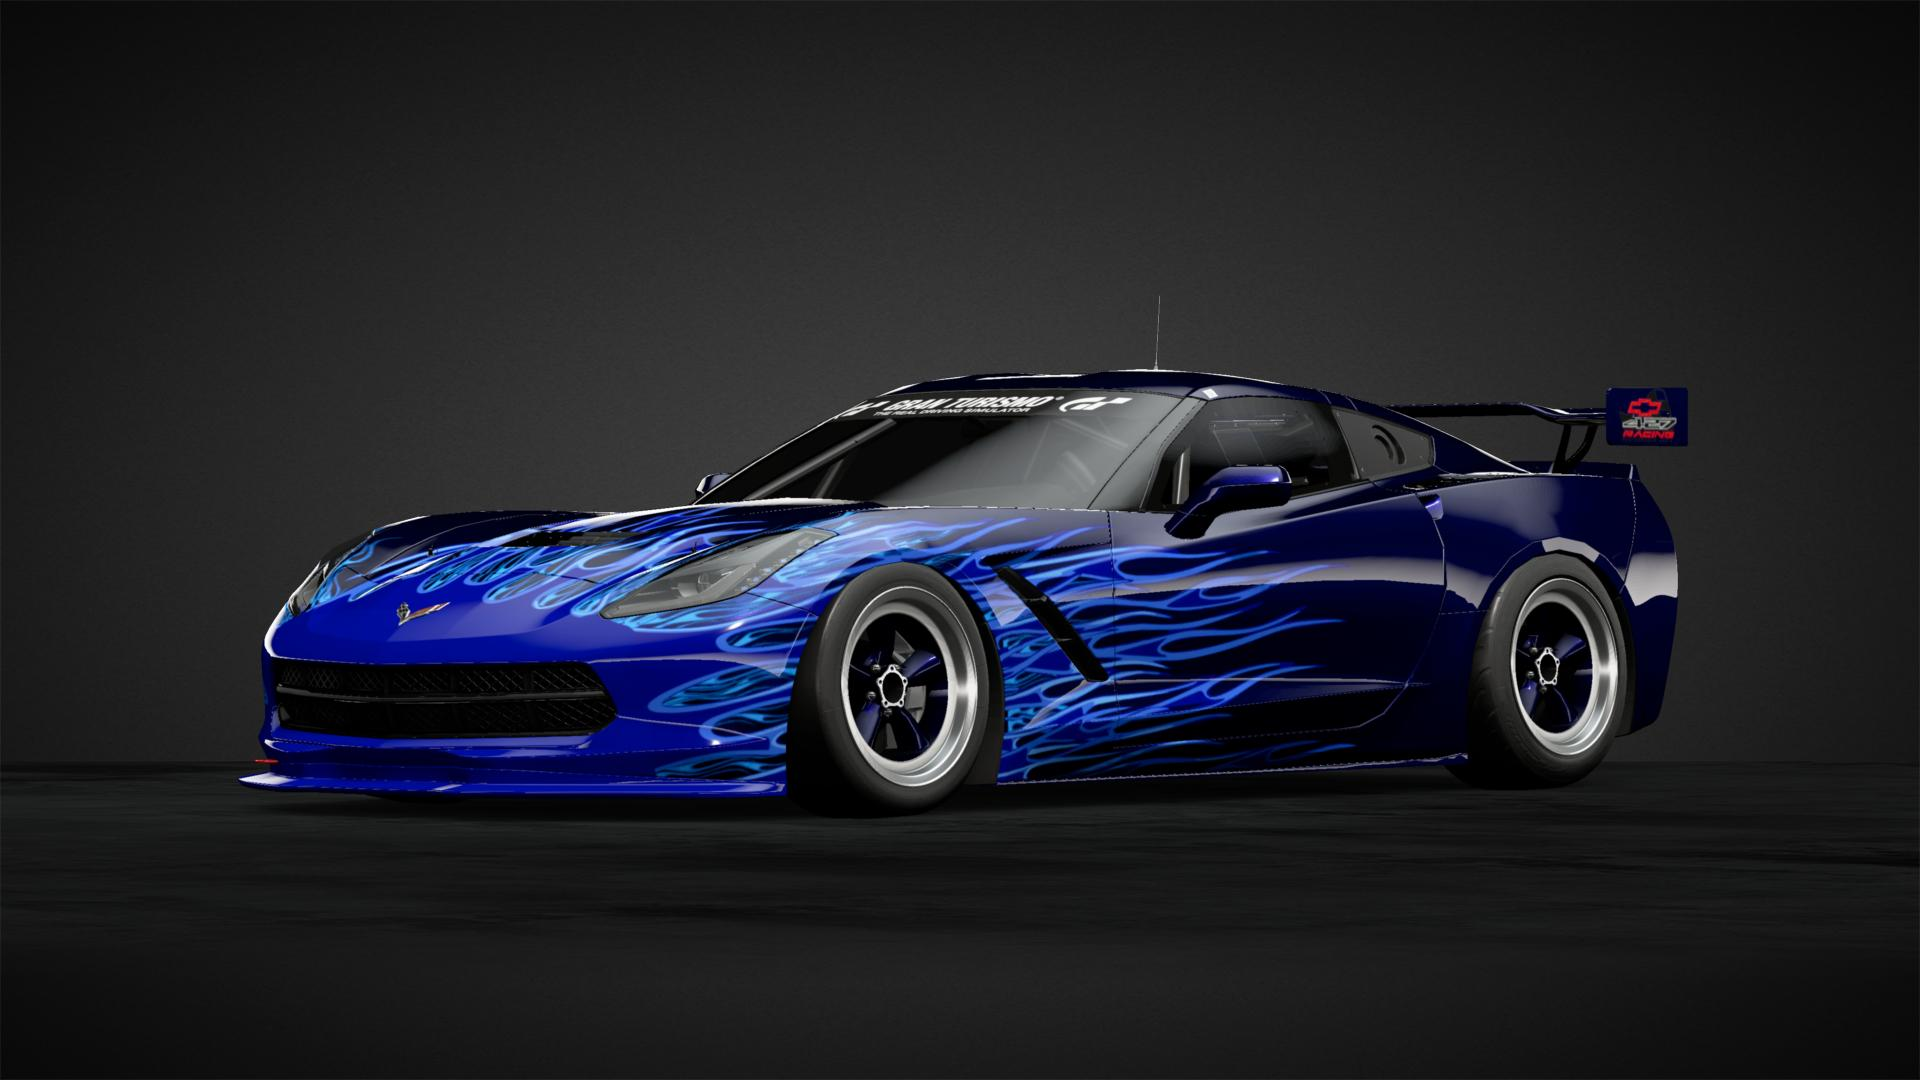 Zfactor527 Blue Flame Vette Car Livery By Z Factor572 Community Gran Turismo Sport